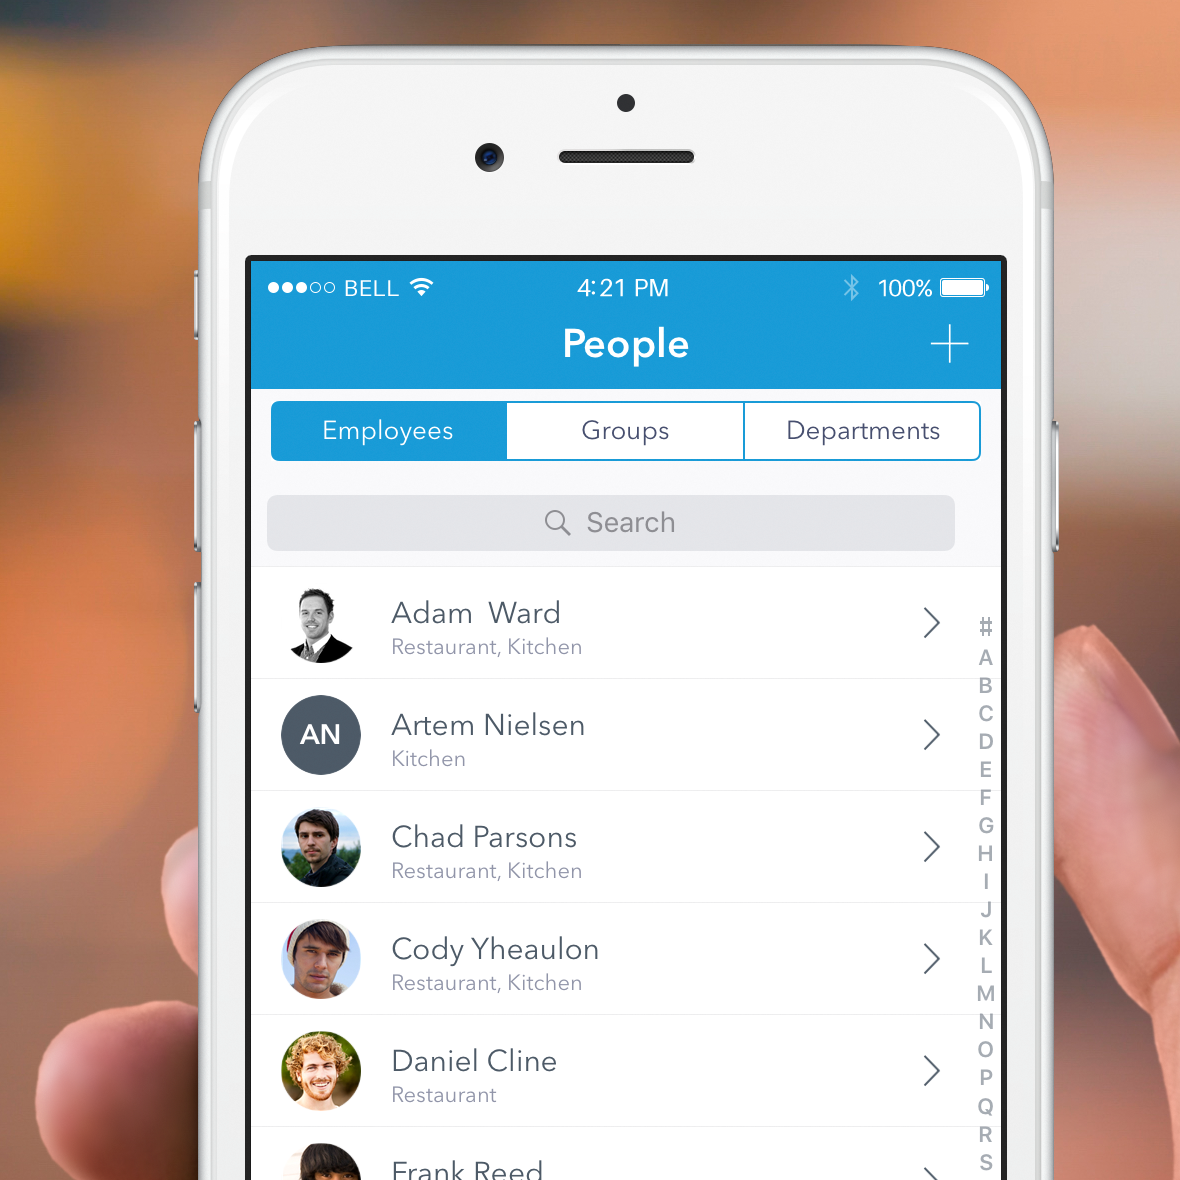 Planday Software - App: Easy access to employee contact information